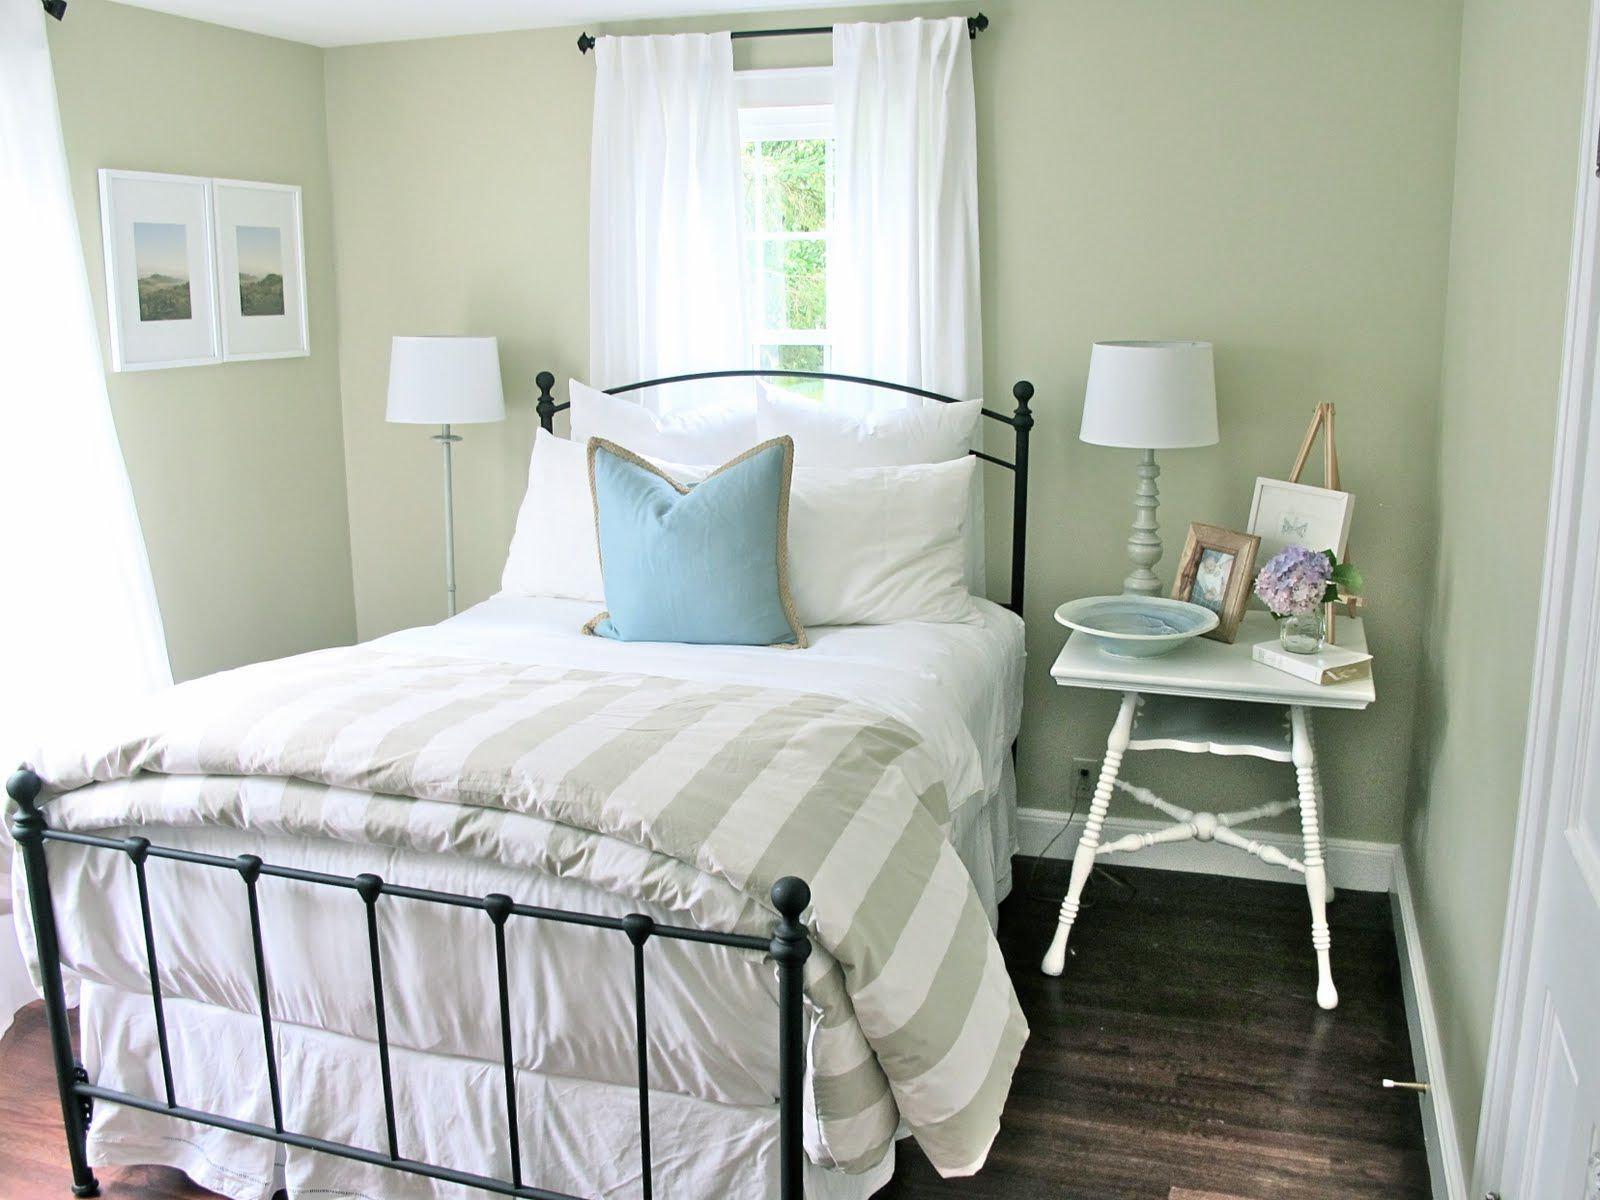 Ordinary Small Guest Room Decorating Ideas Part - 12: Another Great Example Of A Small Guest Room. Again, Light Colors (on The